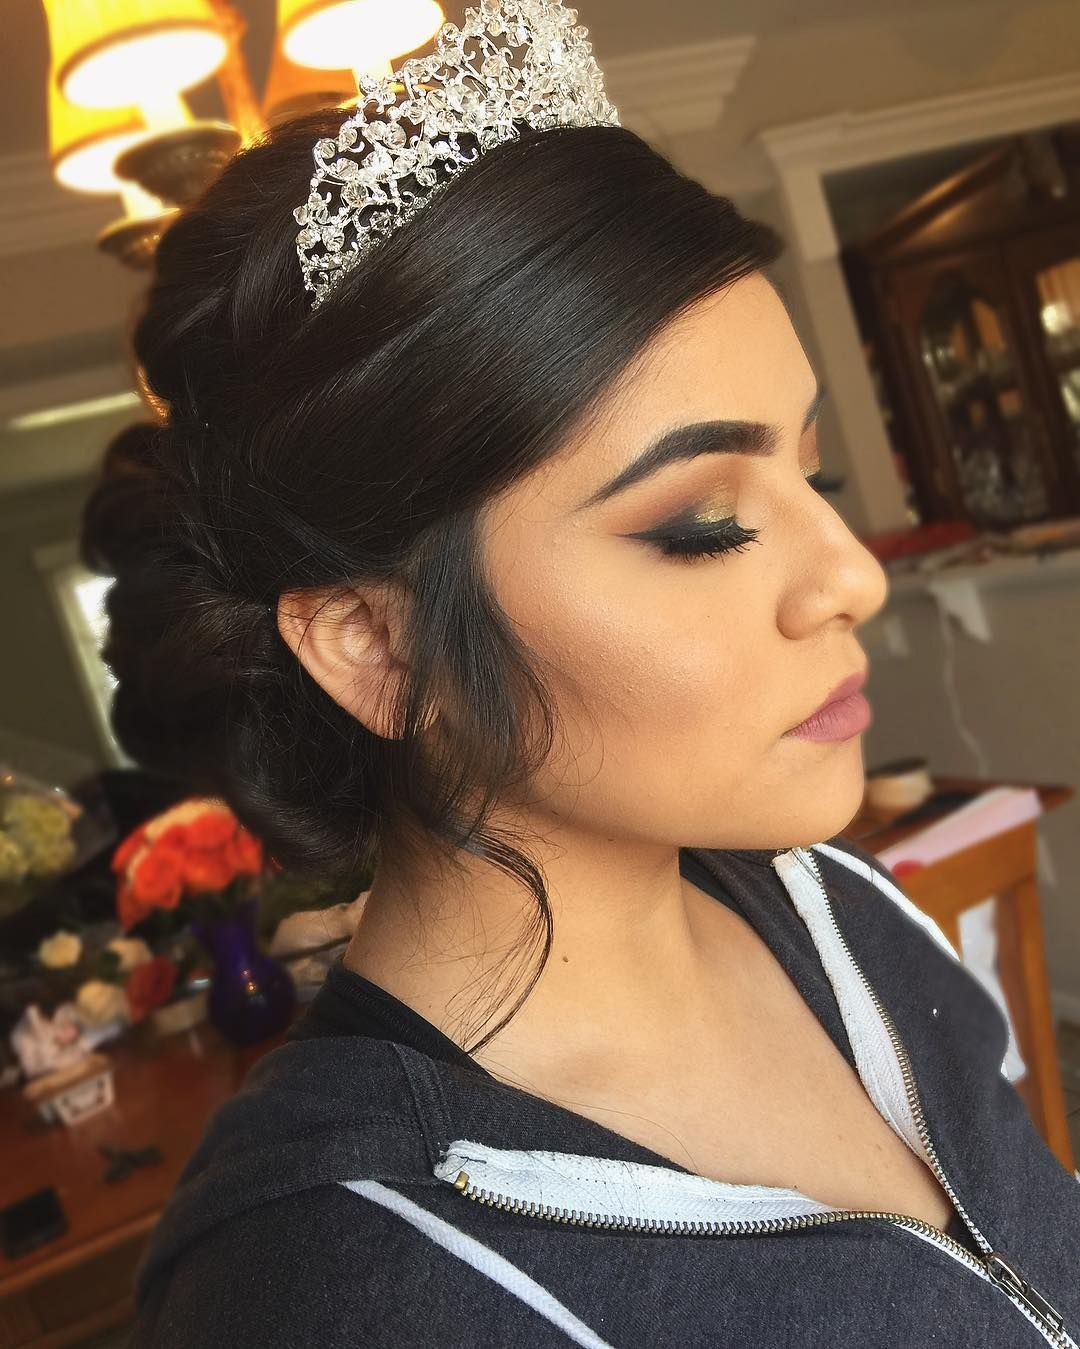 Quinceanera Hairstyles Impressive 20 Absolutely Stunning Quinceanera Hairstyles With Crown  Pinterest